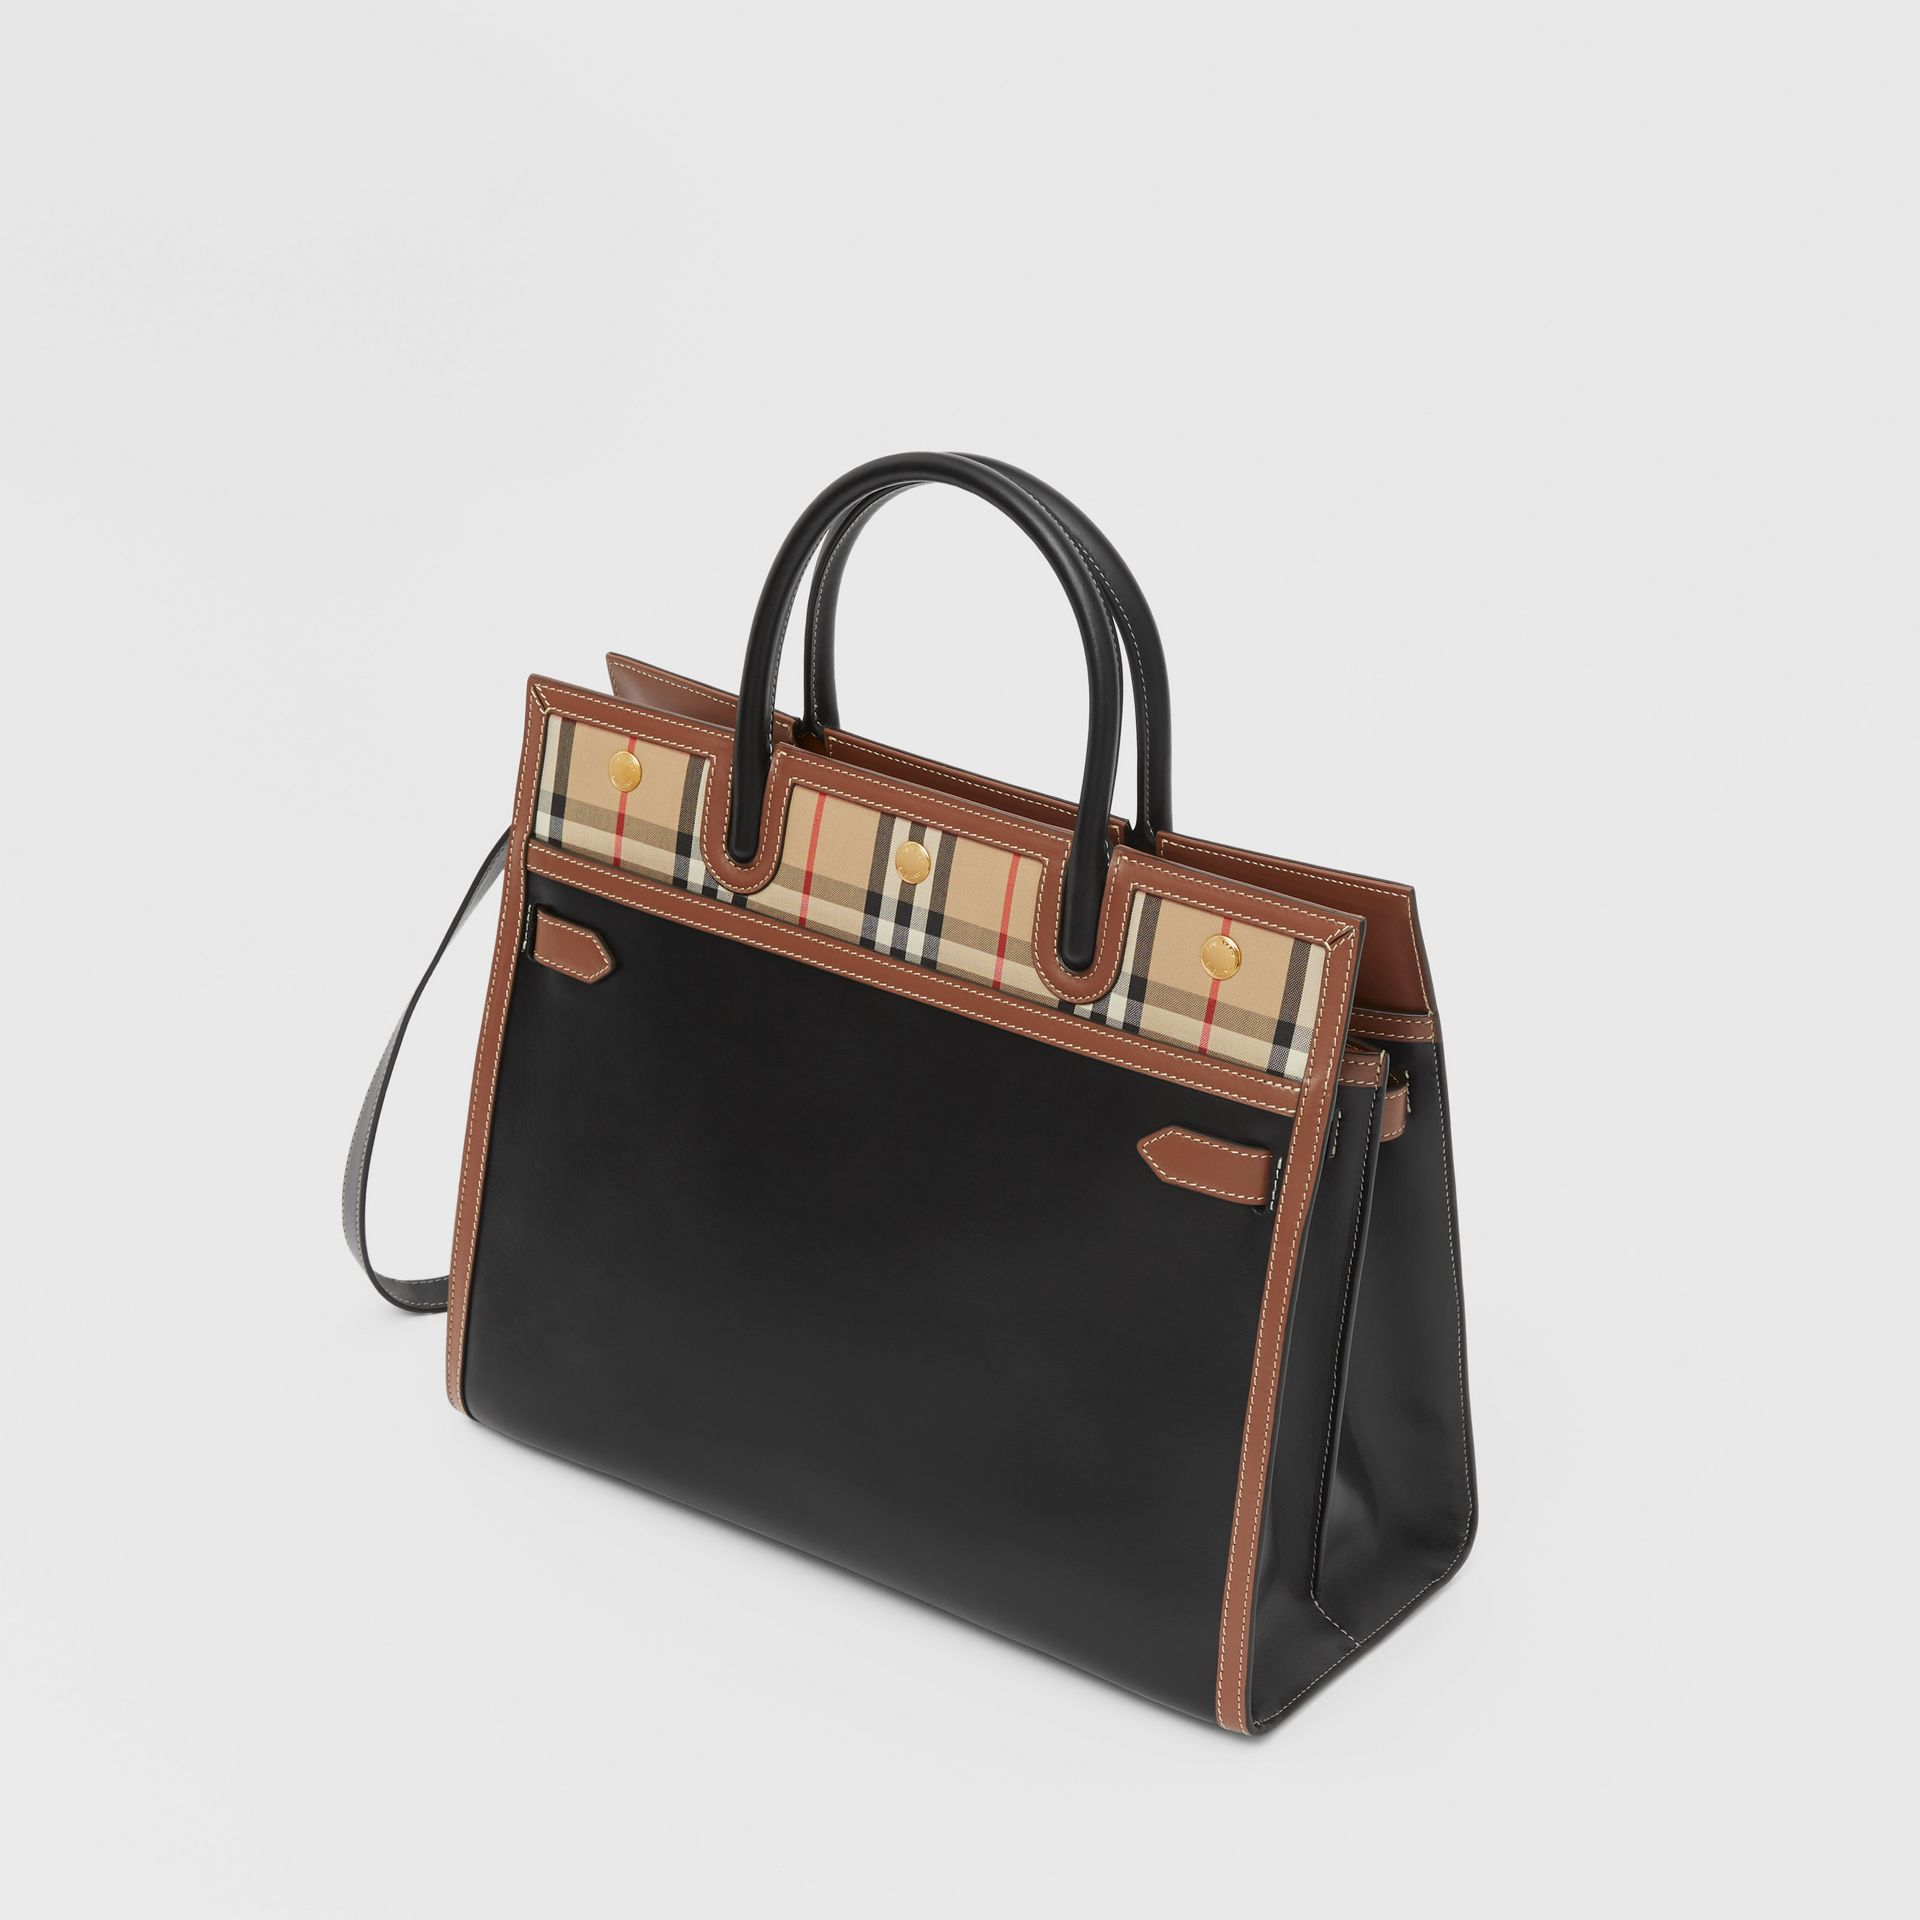 Medium Leather and Vintage Check Two-handle Title Bag in Black - Women | Burberry - gallery image 3